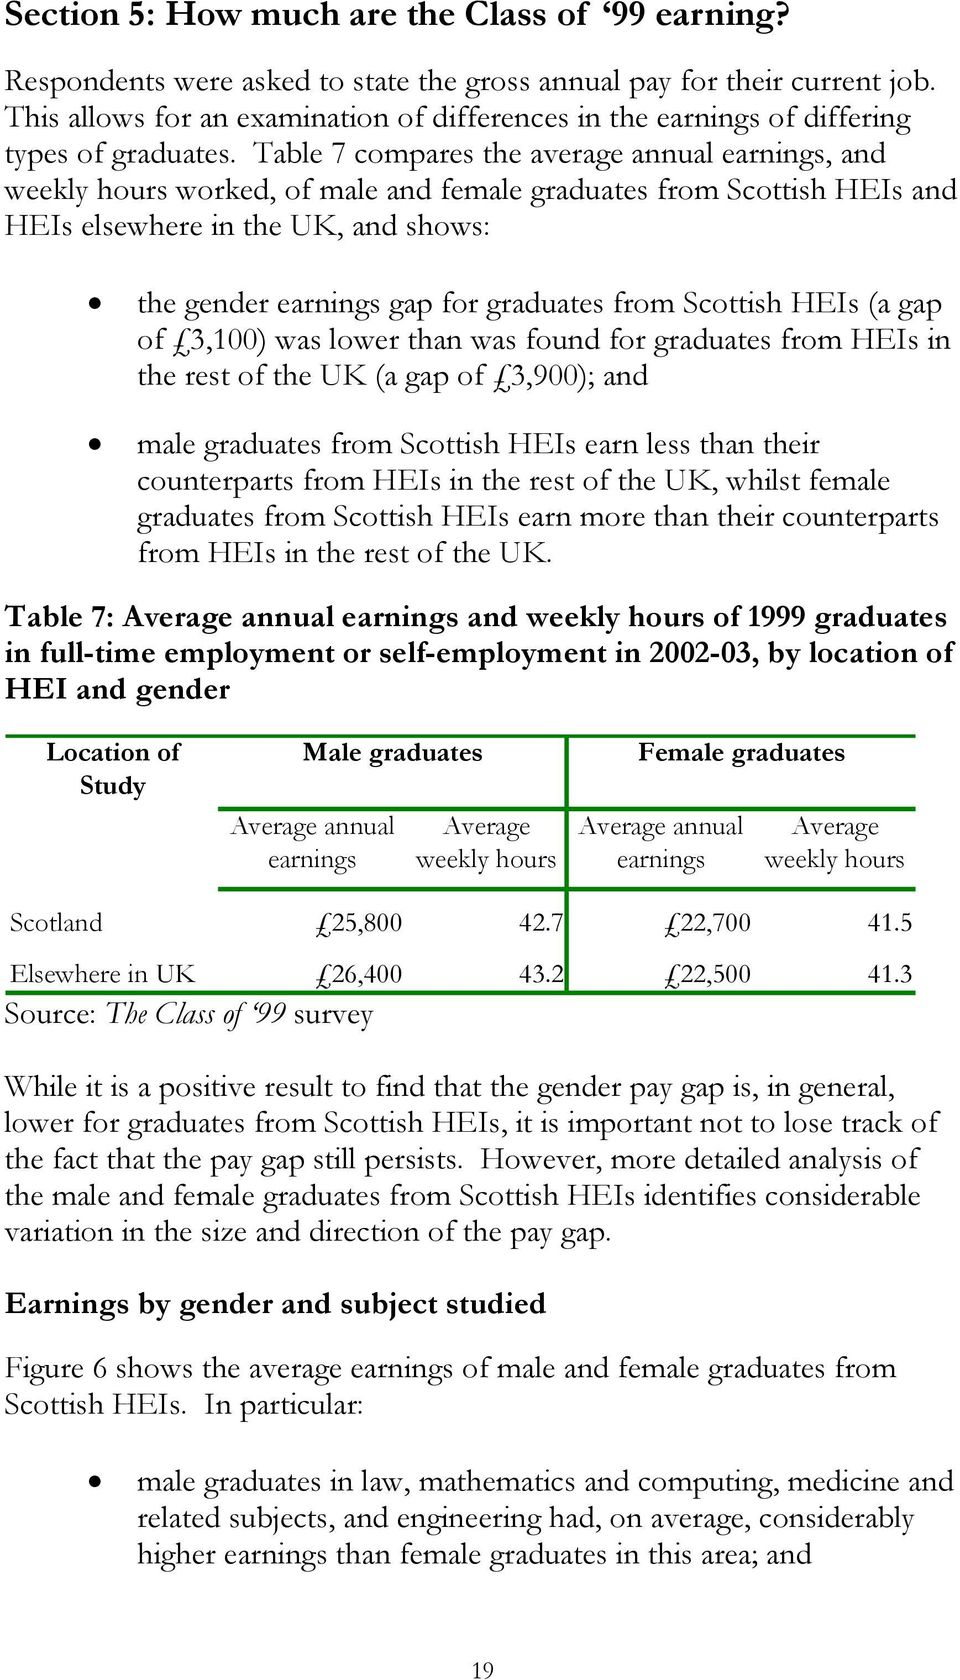 Table 7 compares the average annual earnings, and weekly hours worked, of male and female graduates from Scottish HEIs and HEIs elsewhere in the UK, and shows: the gender earnings gap for graduates